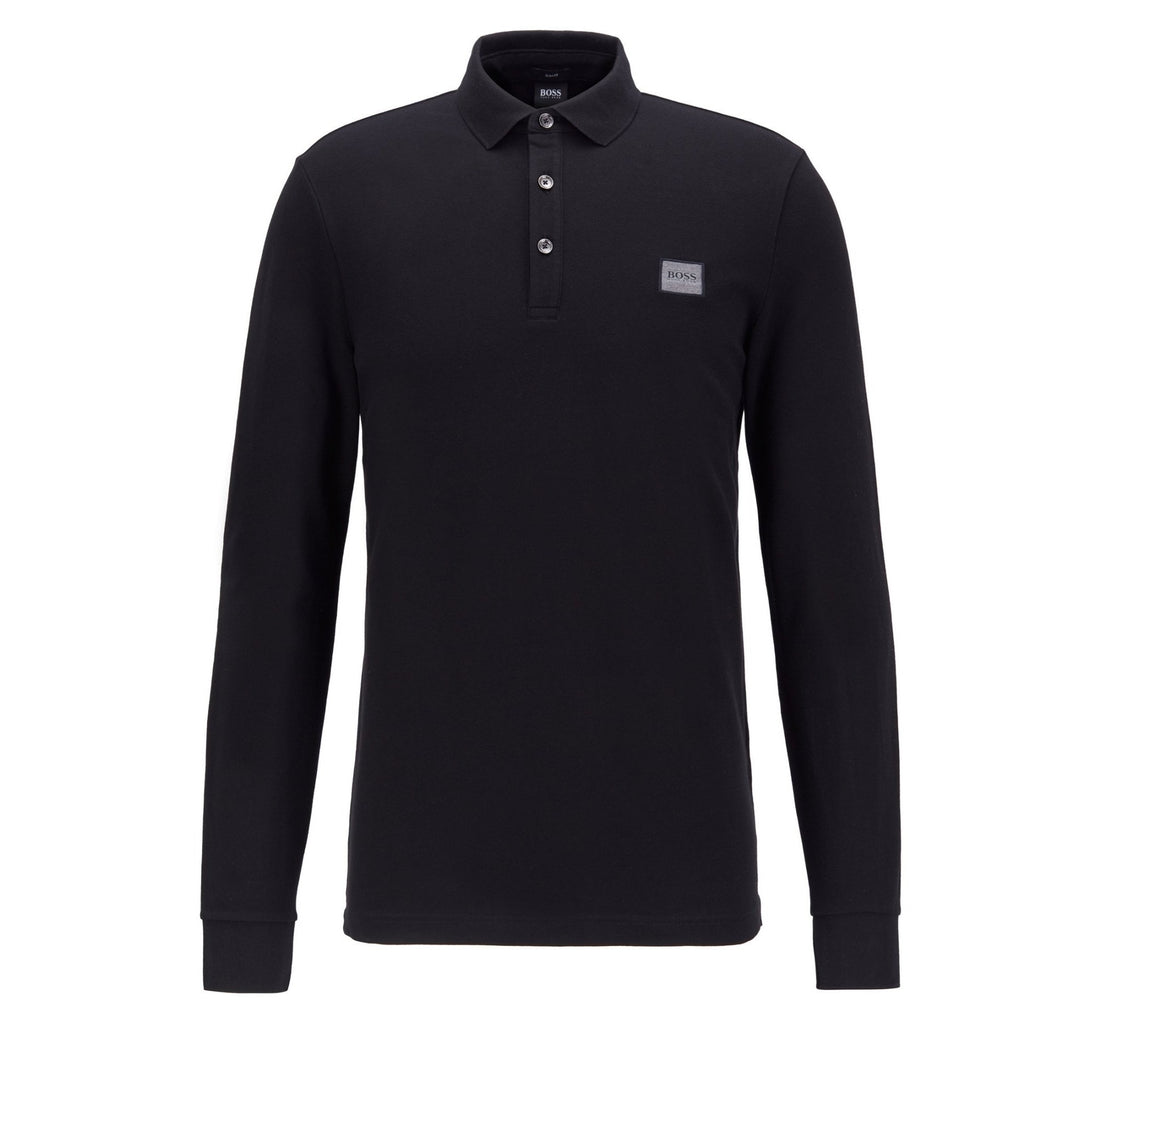 Passerby Long Sleeve Polo for Men in Black